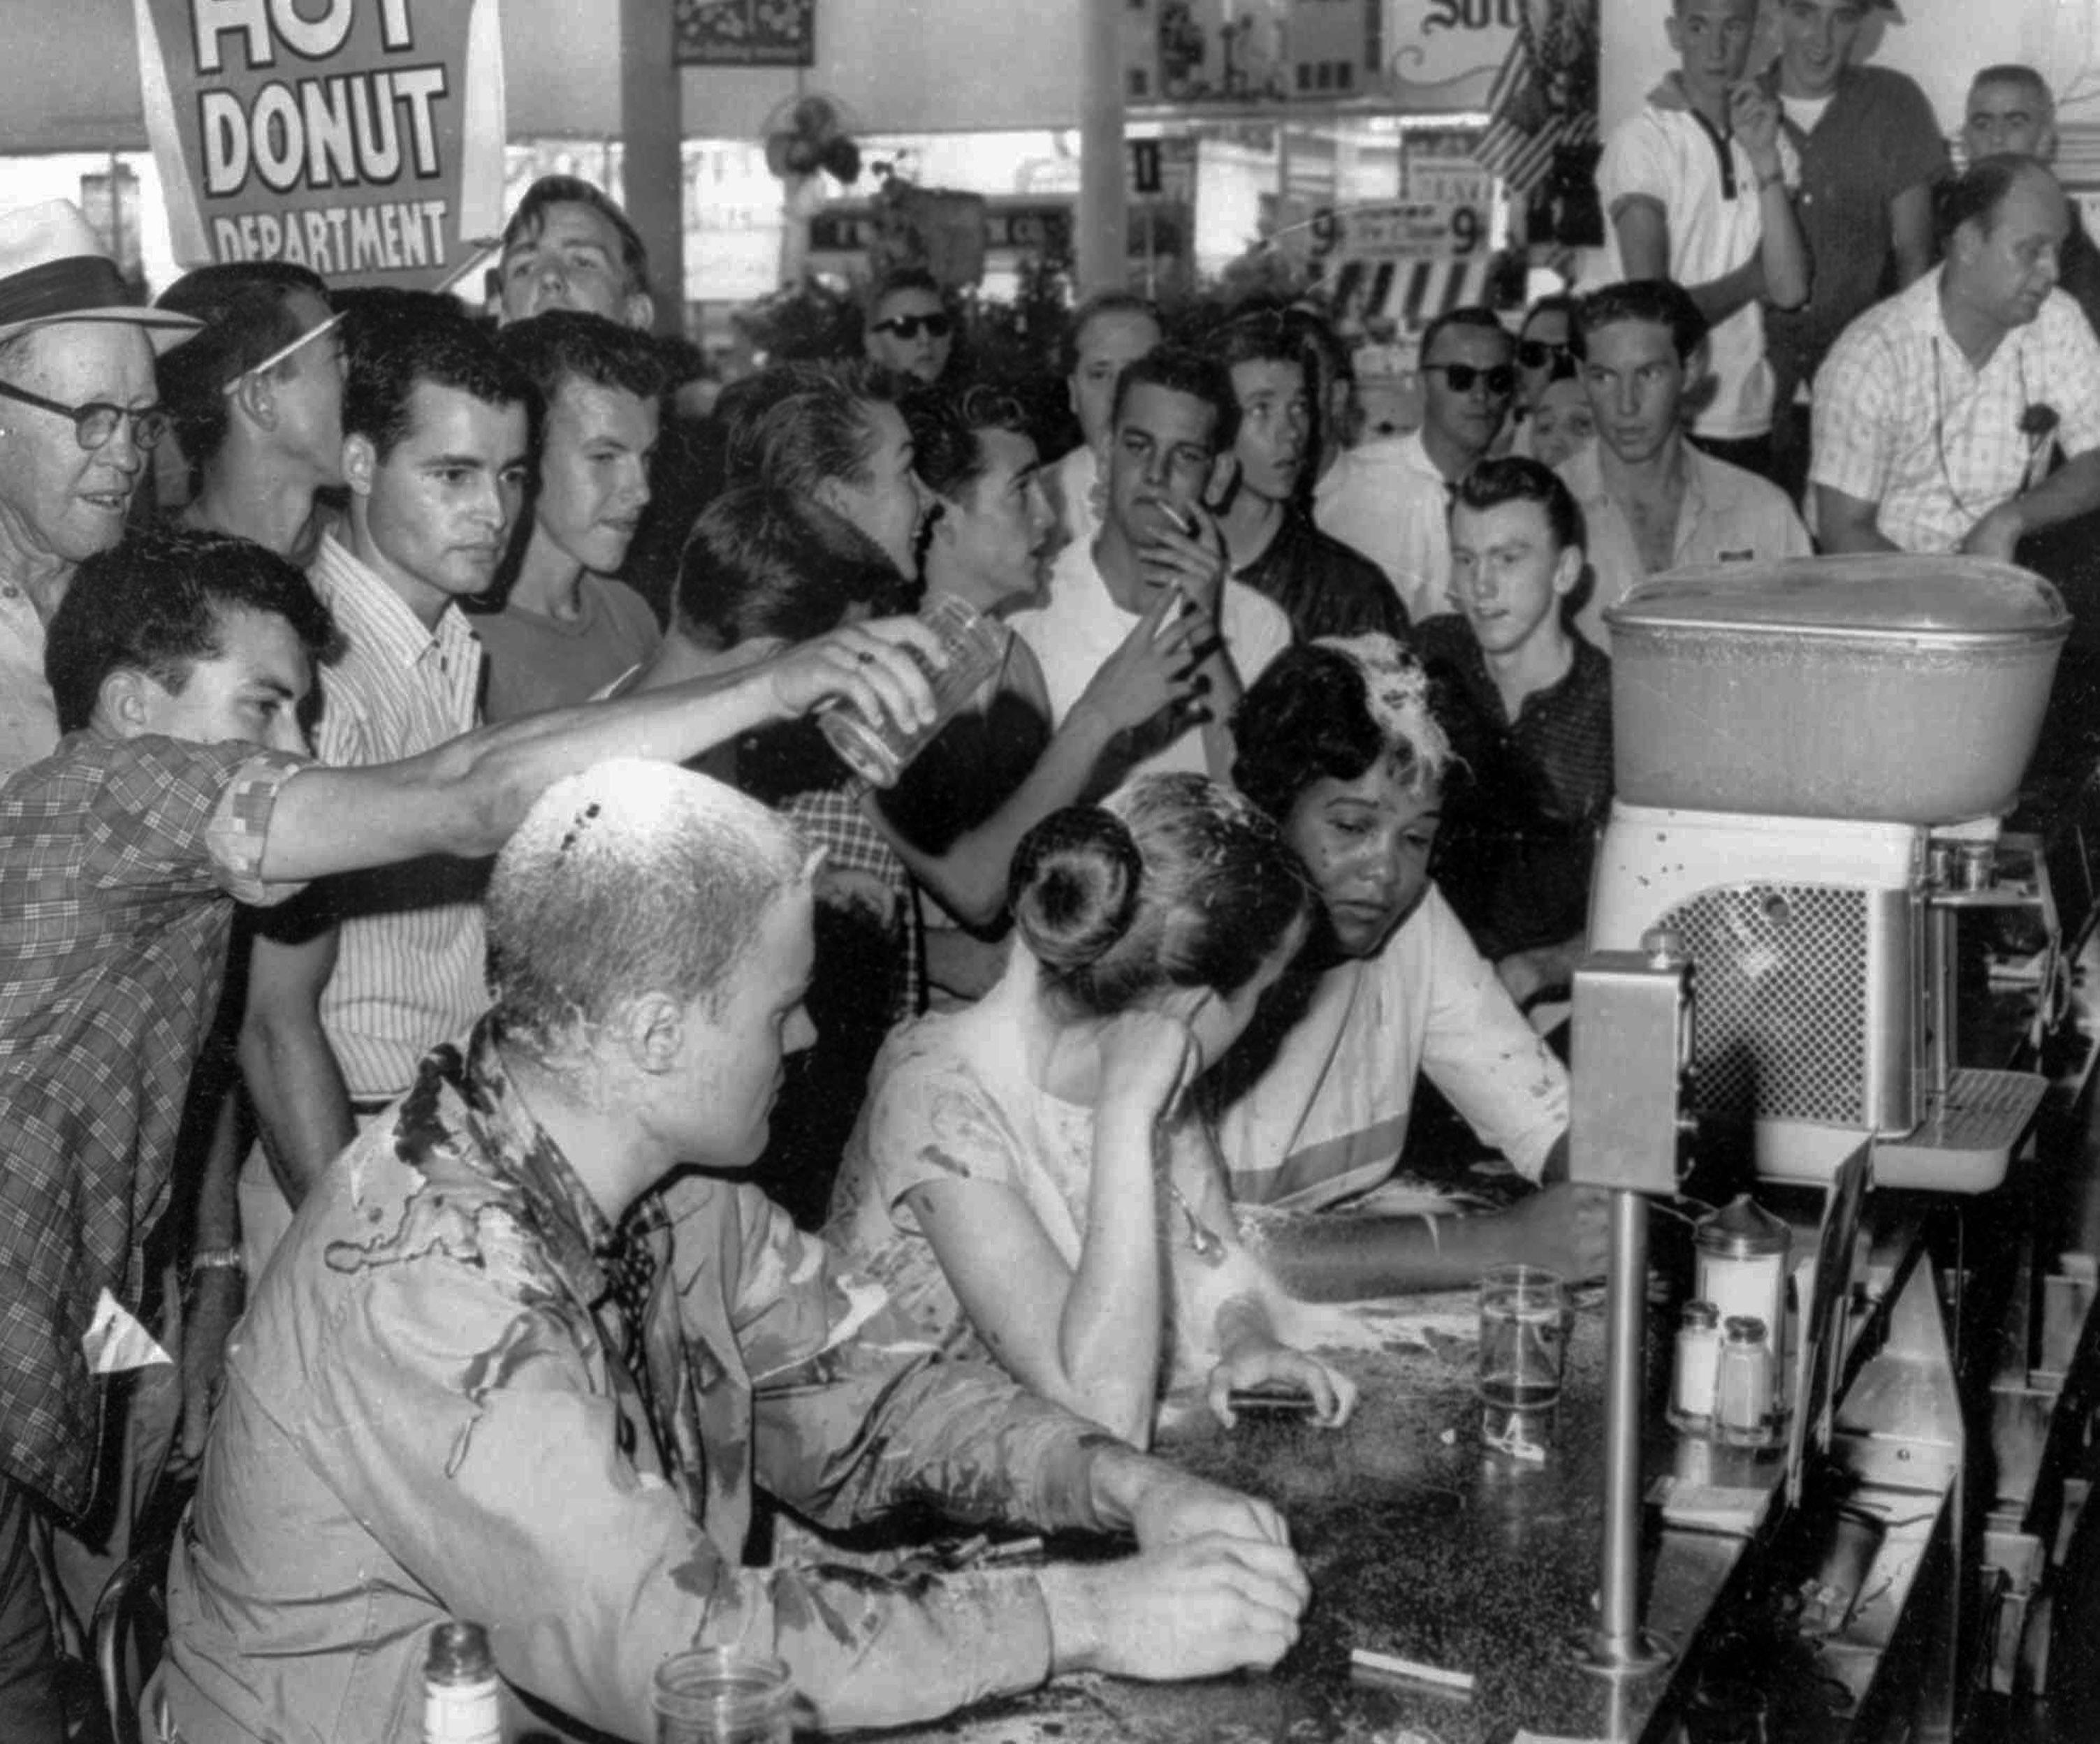 FILE - In this May 28, 1963 file photo, a group of whites pour sugar, ketchup and mustard over the heads of Tougaloo College student demonstrators at a sit-in demonstration at a Woolworth's lunch counter in Jackson, Miss. Seated at the counter, from left, are Tougaloo College professor John Salter,and students Joan Trumpauer and Anne Moody. John Salter, who also used the name John Hunter Gray, died Monday, Jan. 7, 2019 at his home in Pocatello, Idaho.  Relatives say he was 84 when he died Monday after an illness. (Fred Blackwell/The Clarion-Ledger via AP, File) ORG XMIT: MSJAD701